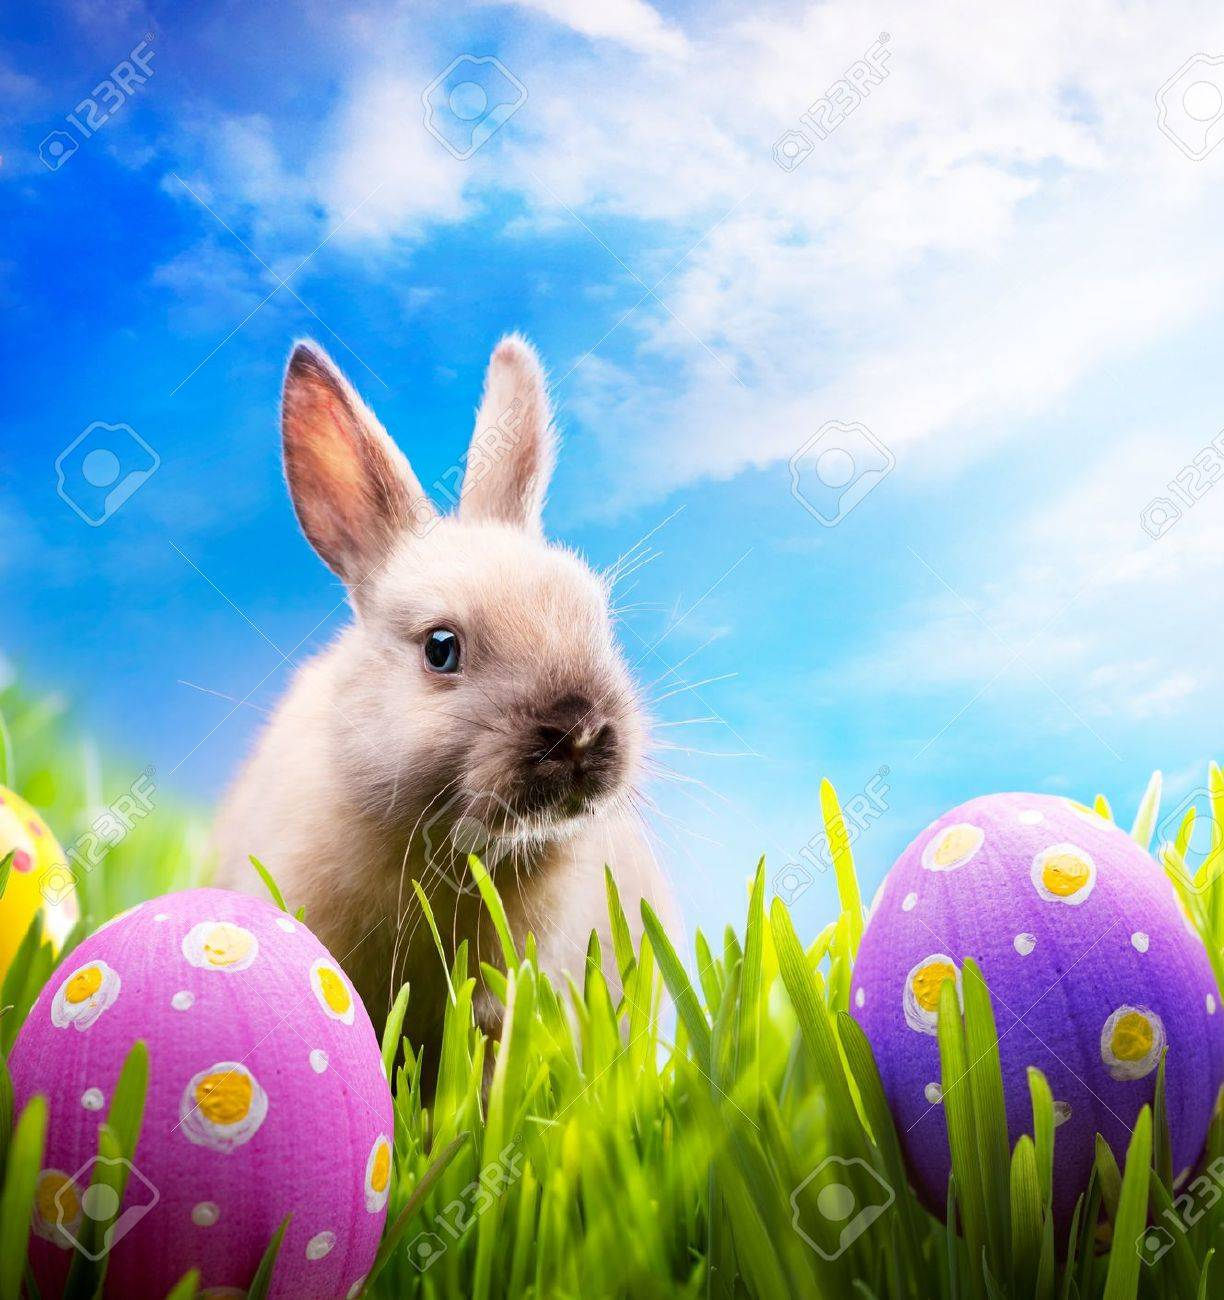 Easter Bunny With Eggs Photo Album - The Miracle of Easter